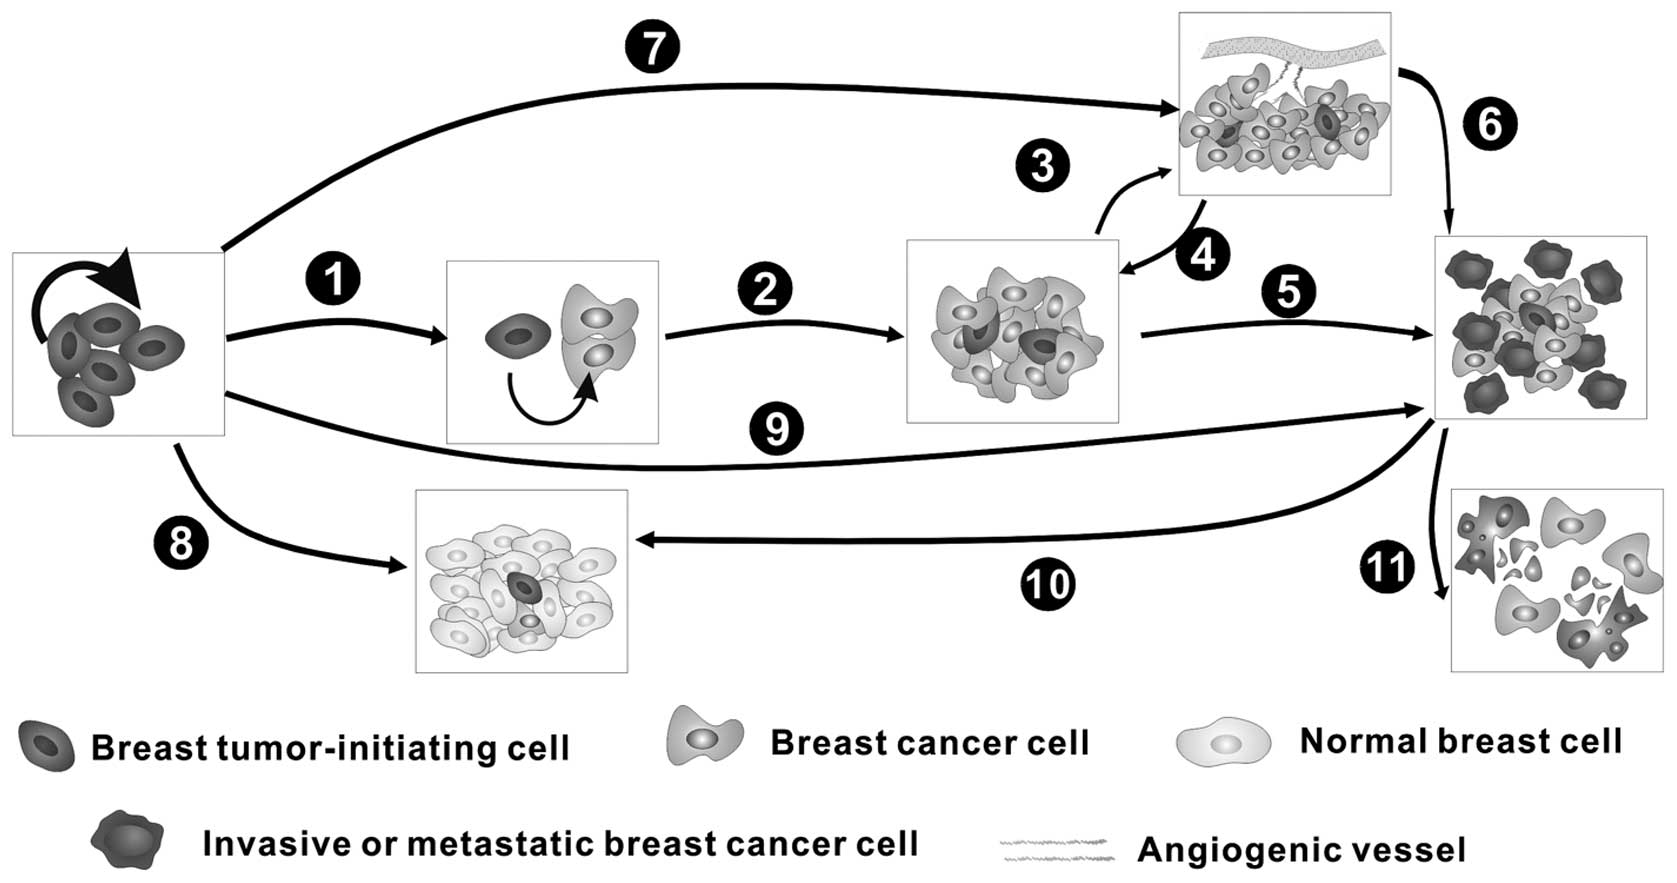 microrna 21 concentrations in breast cancer Microrna-21 (mir-21) located on 17q231 expressed in breast cancer has anti-apoptotic ability and causes tumor cell growth it is also involved in functions such as signal transduction pathways.